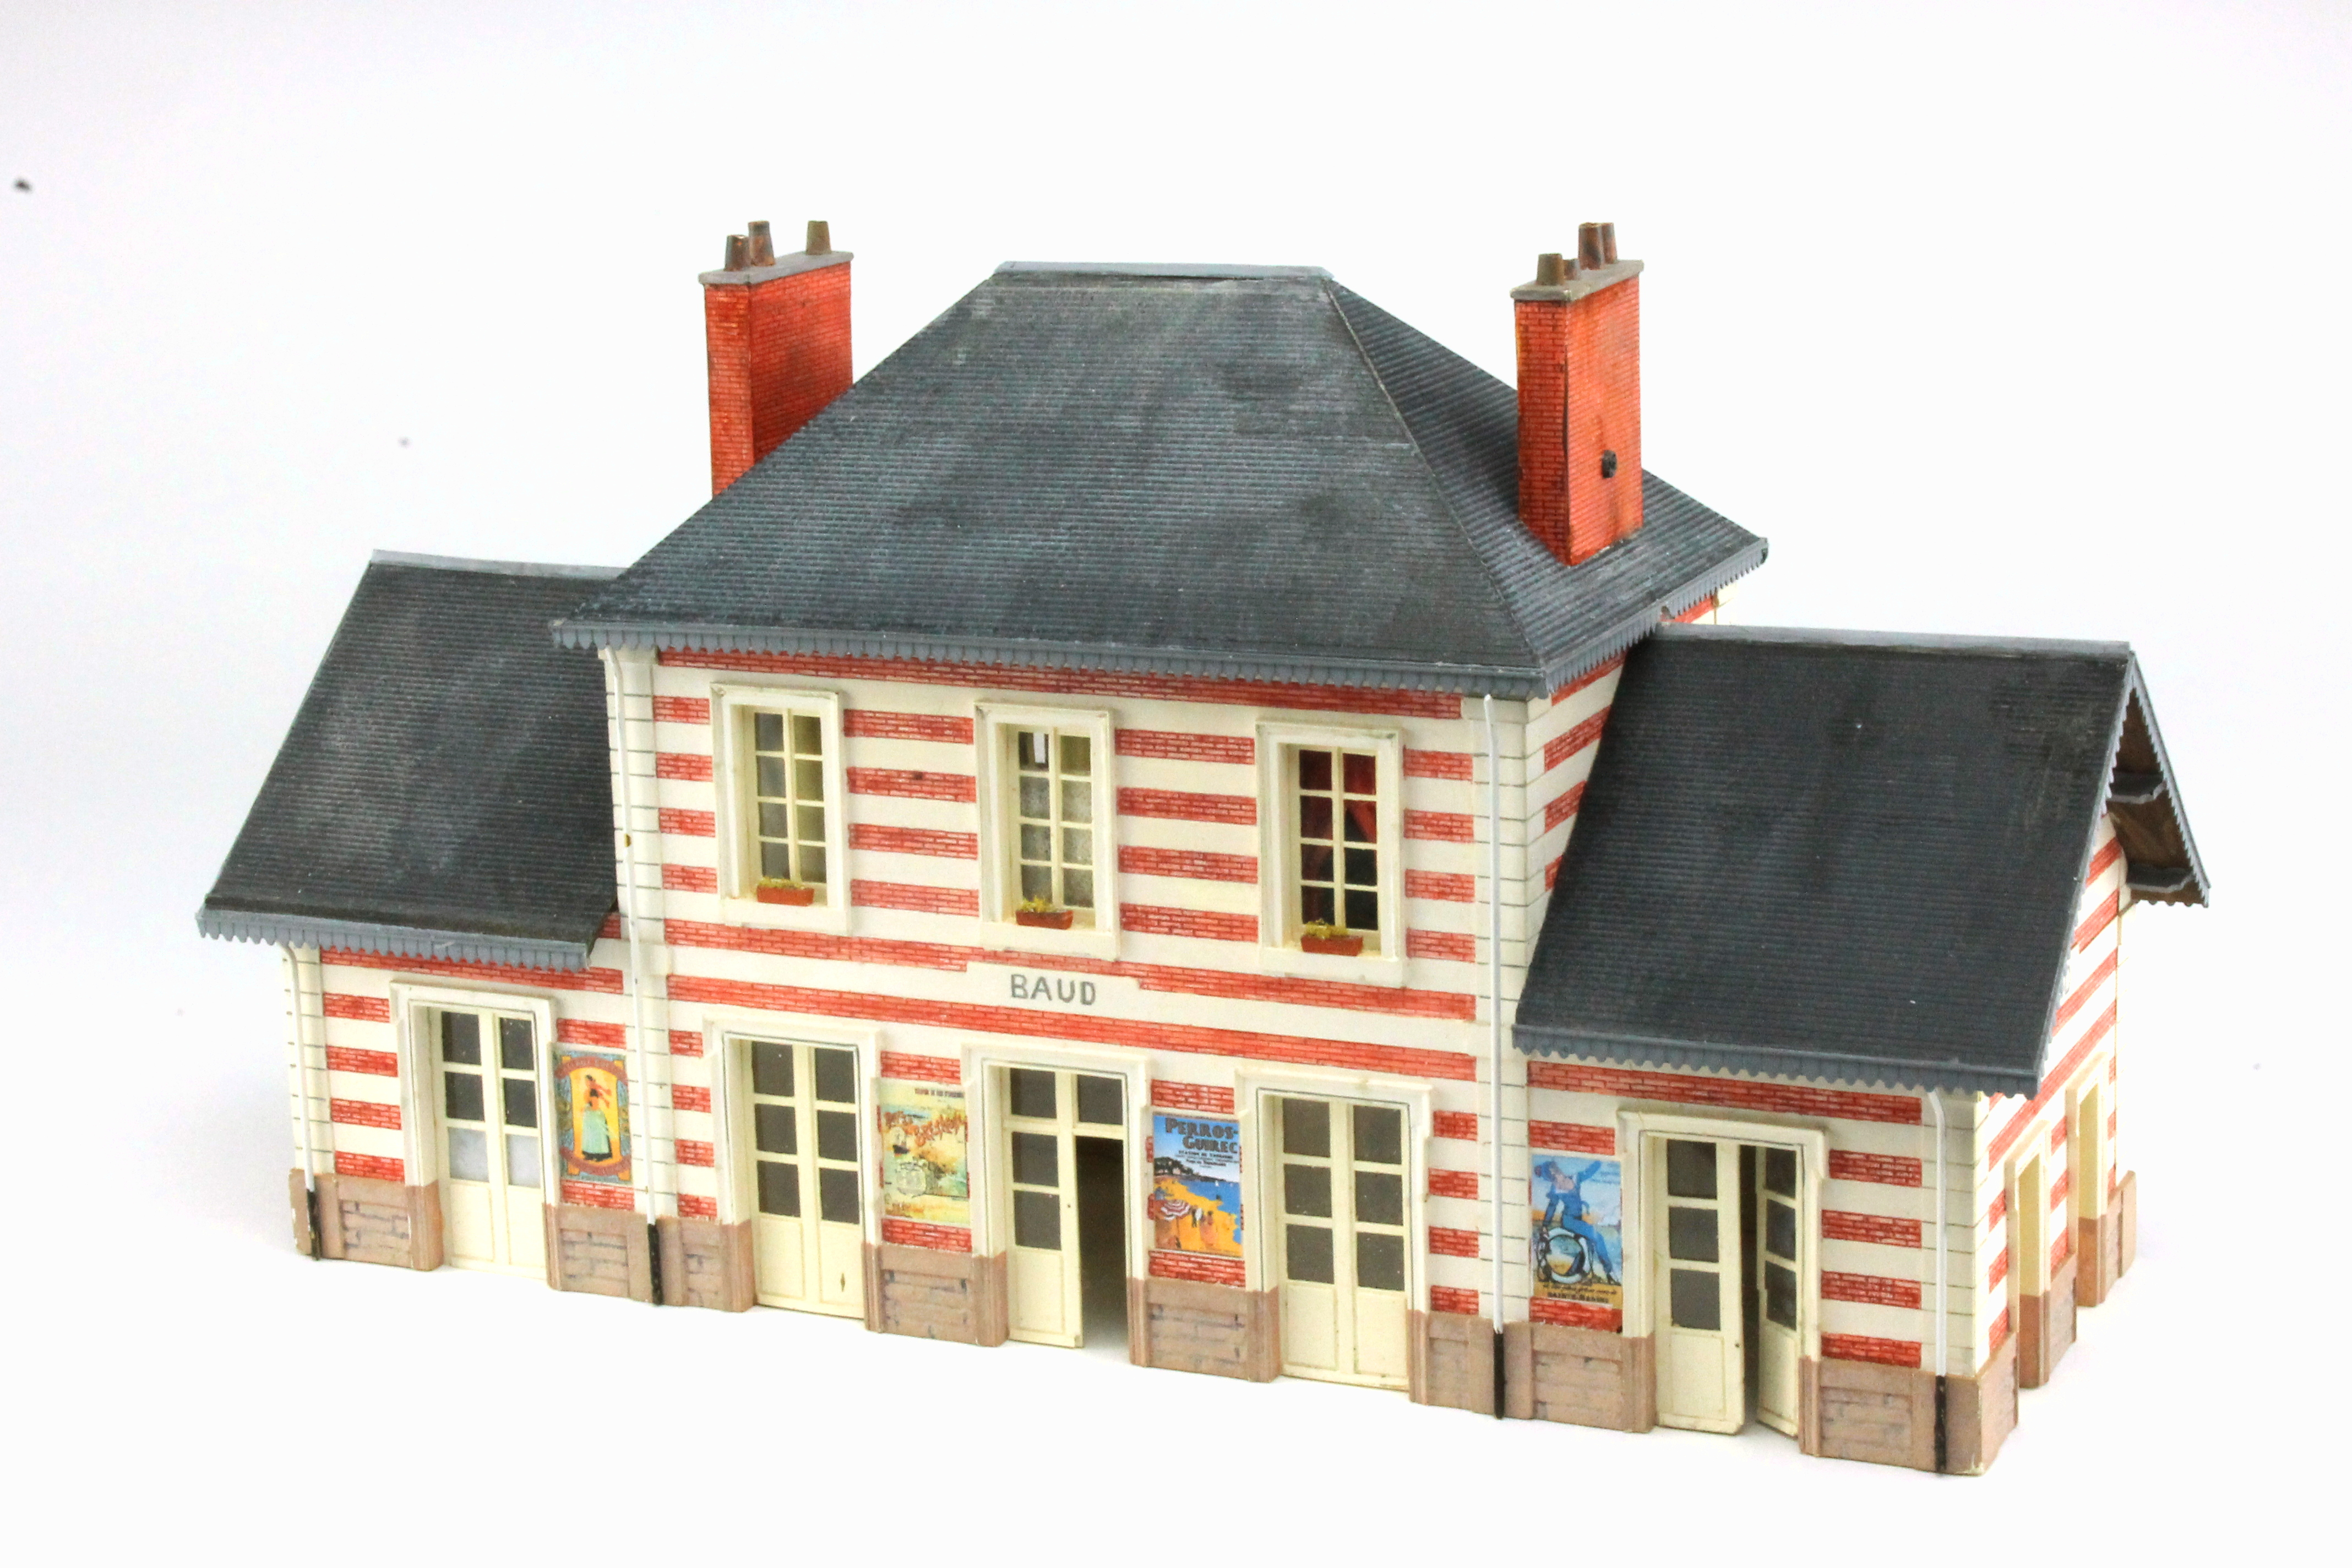 maquette gare voyageures PO ouest BV baud HO 1/87